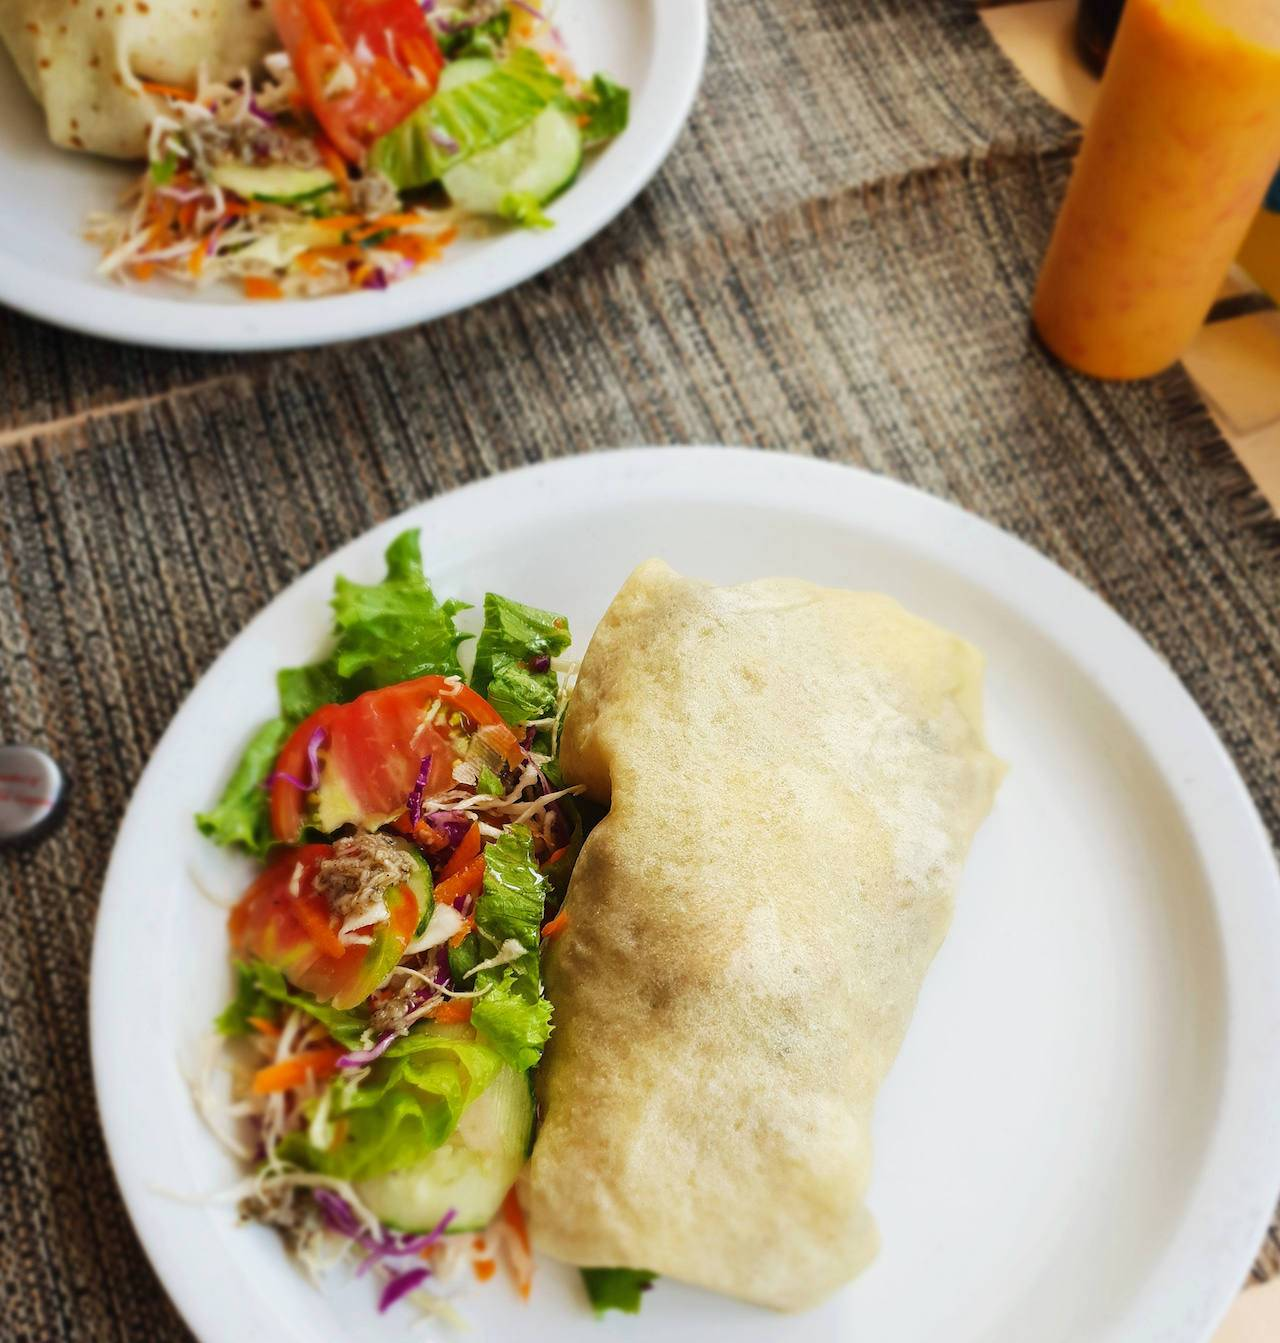 Local foods to try in Saint Lucia